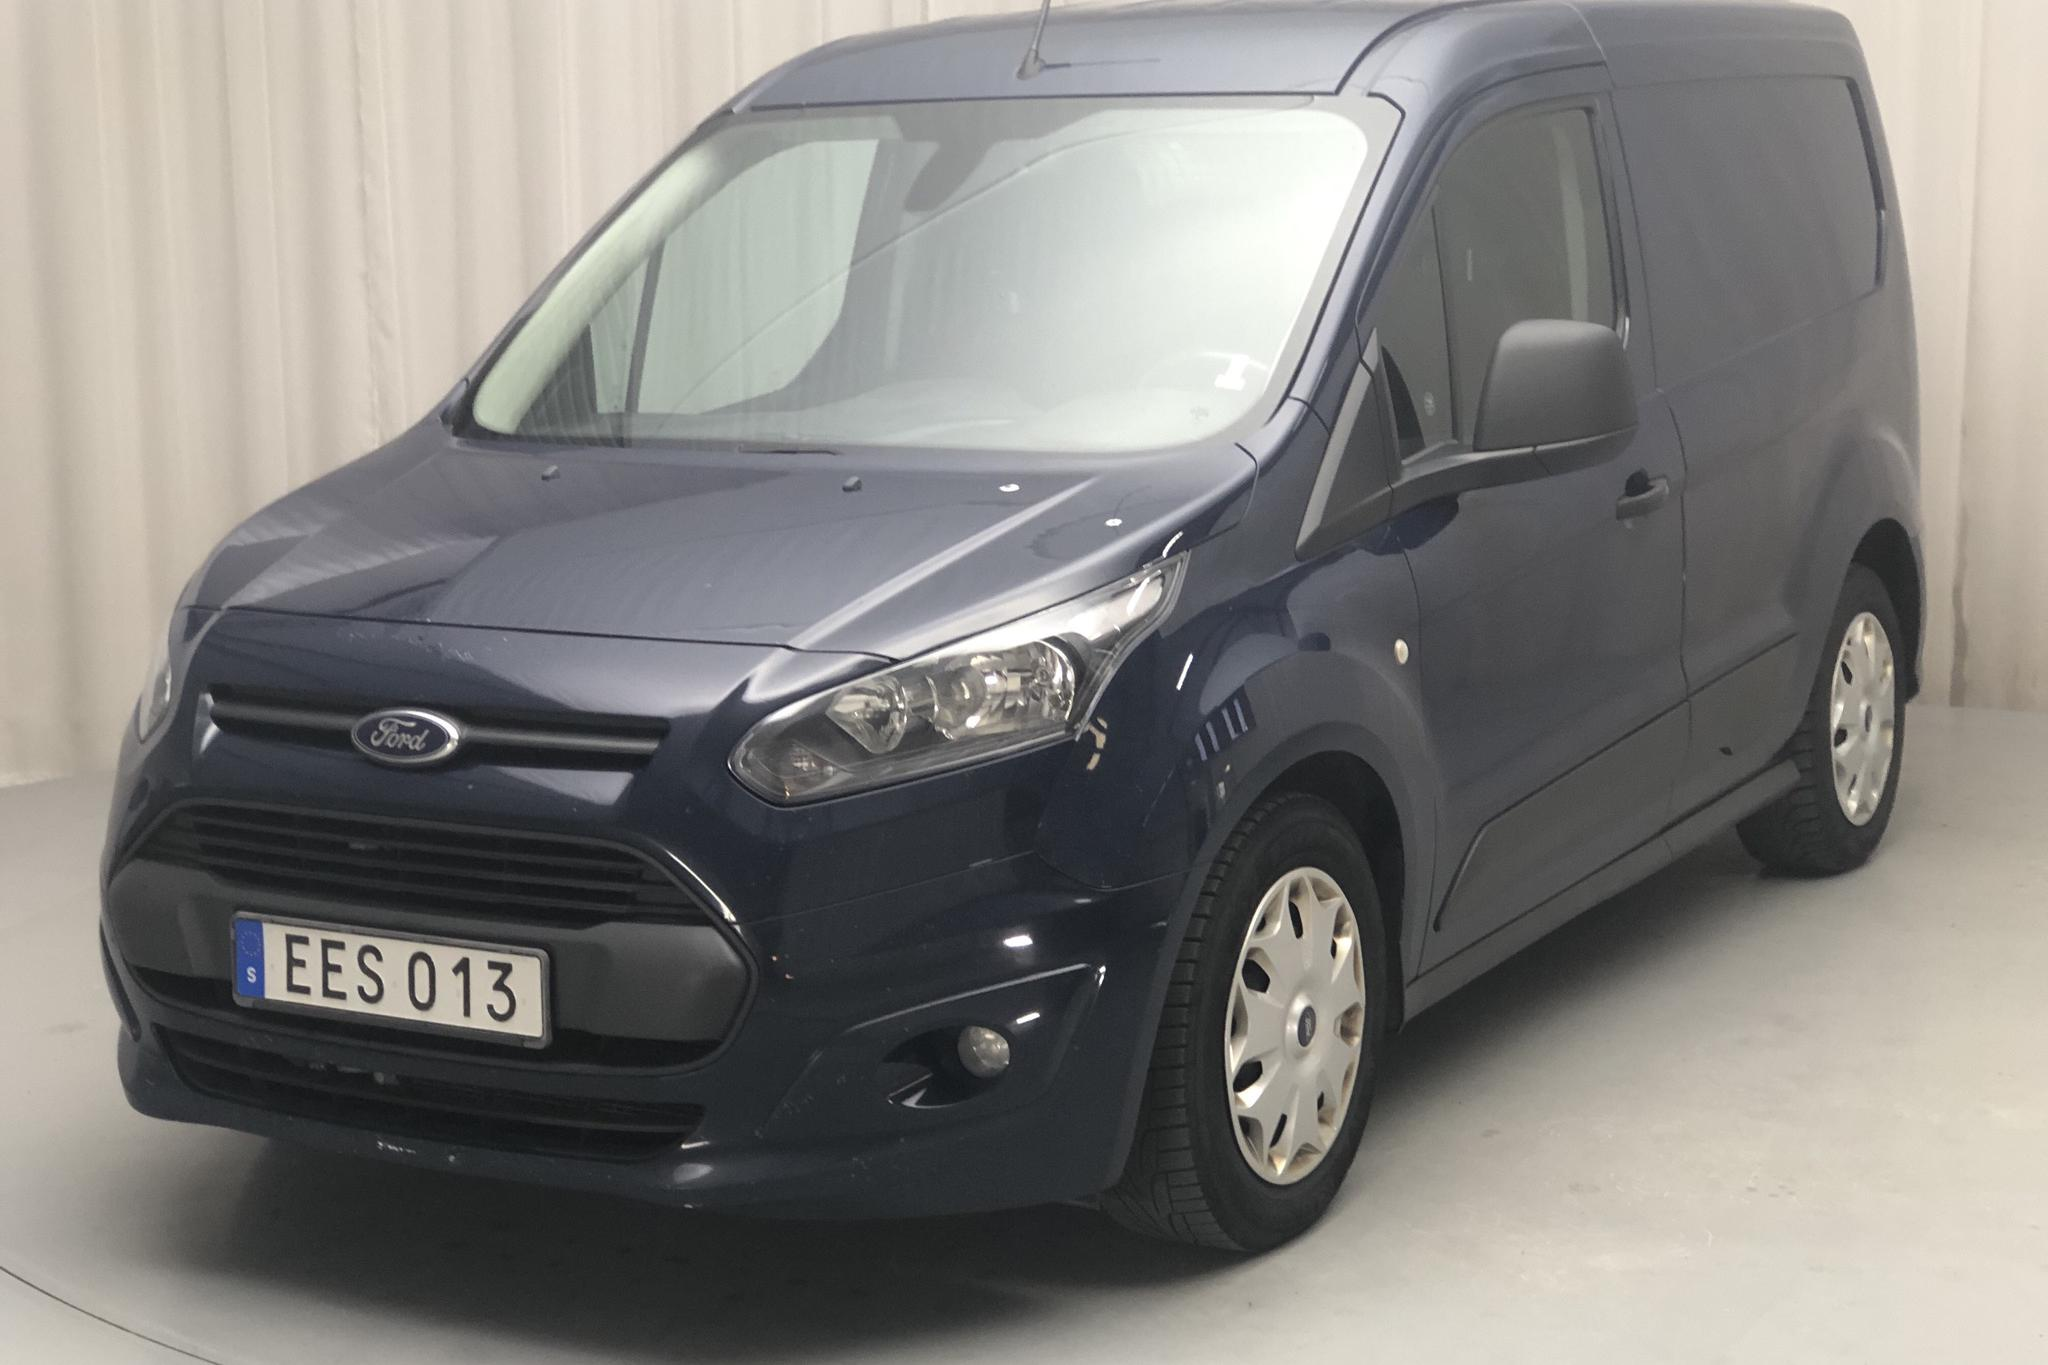 Ford Transit Connect 1.6 TDCi (115hk) - 164 160 km - Manual - blue - 2014